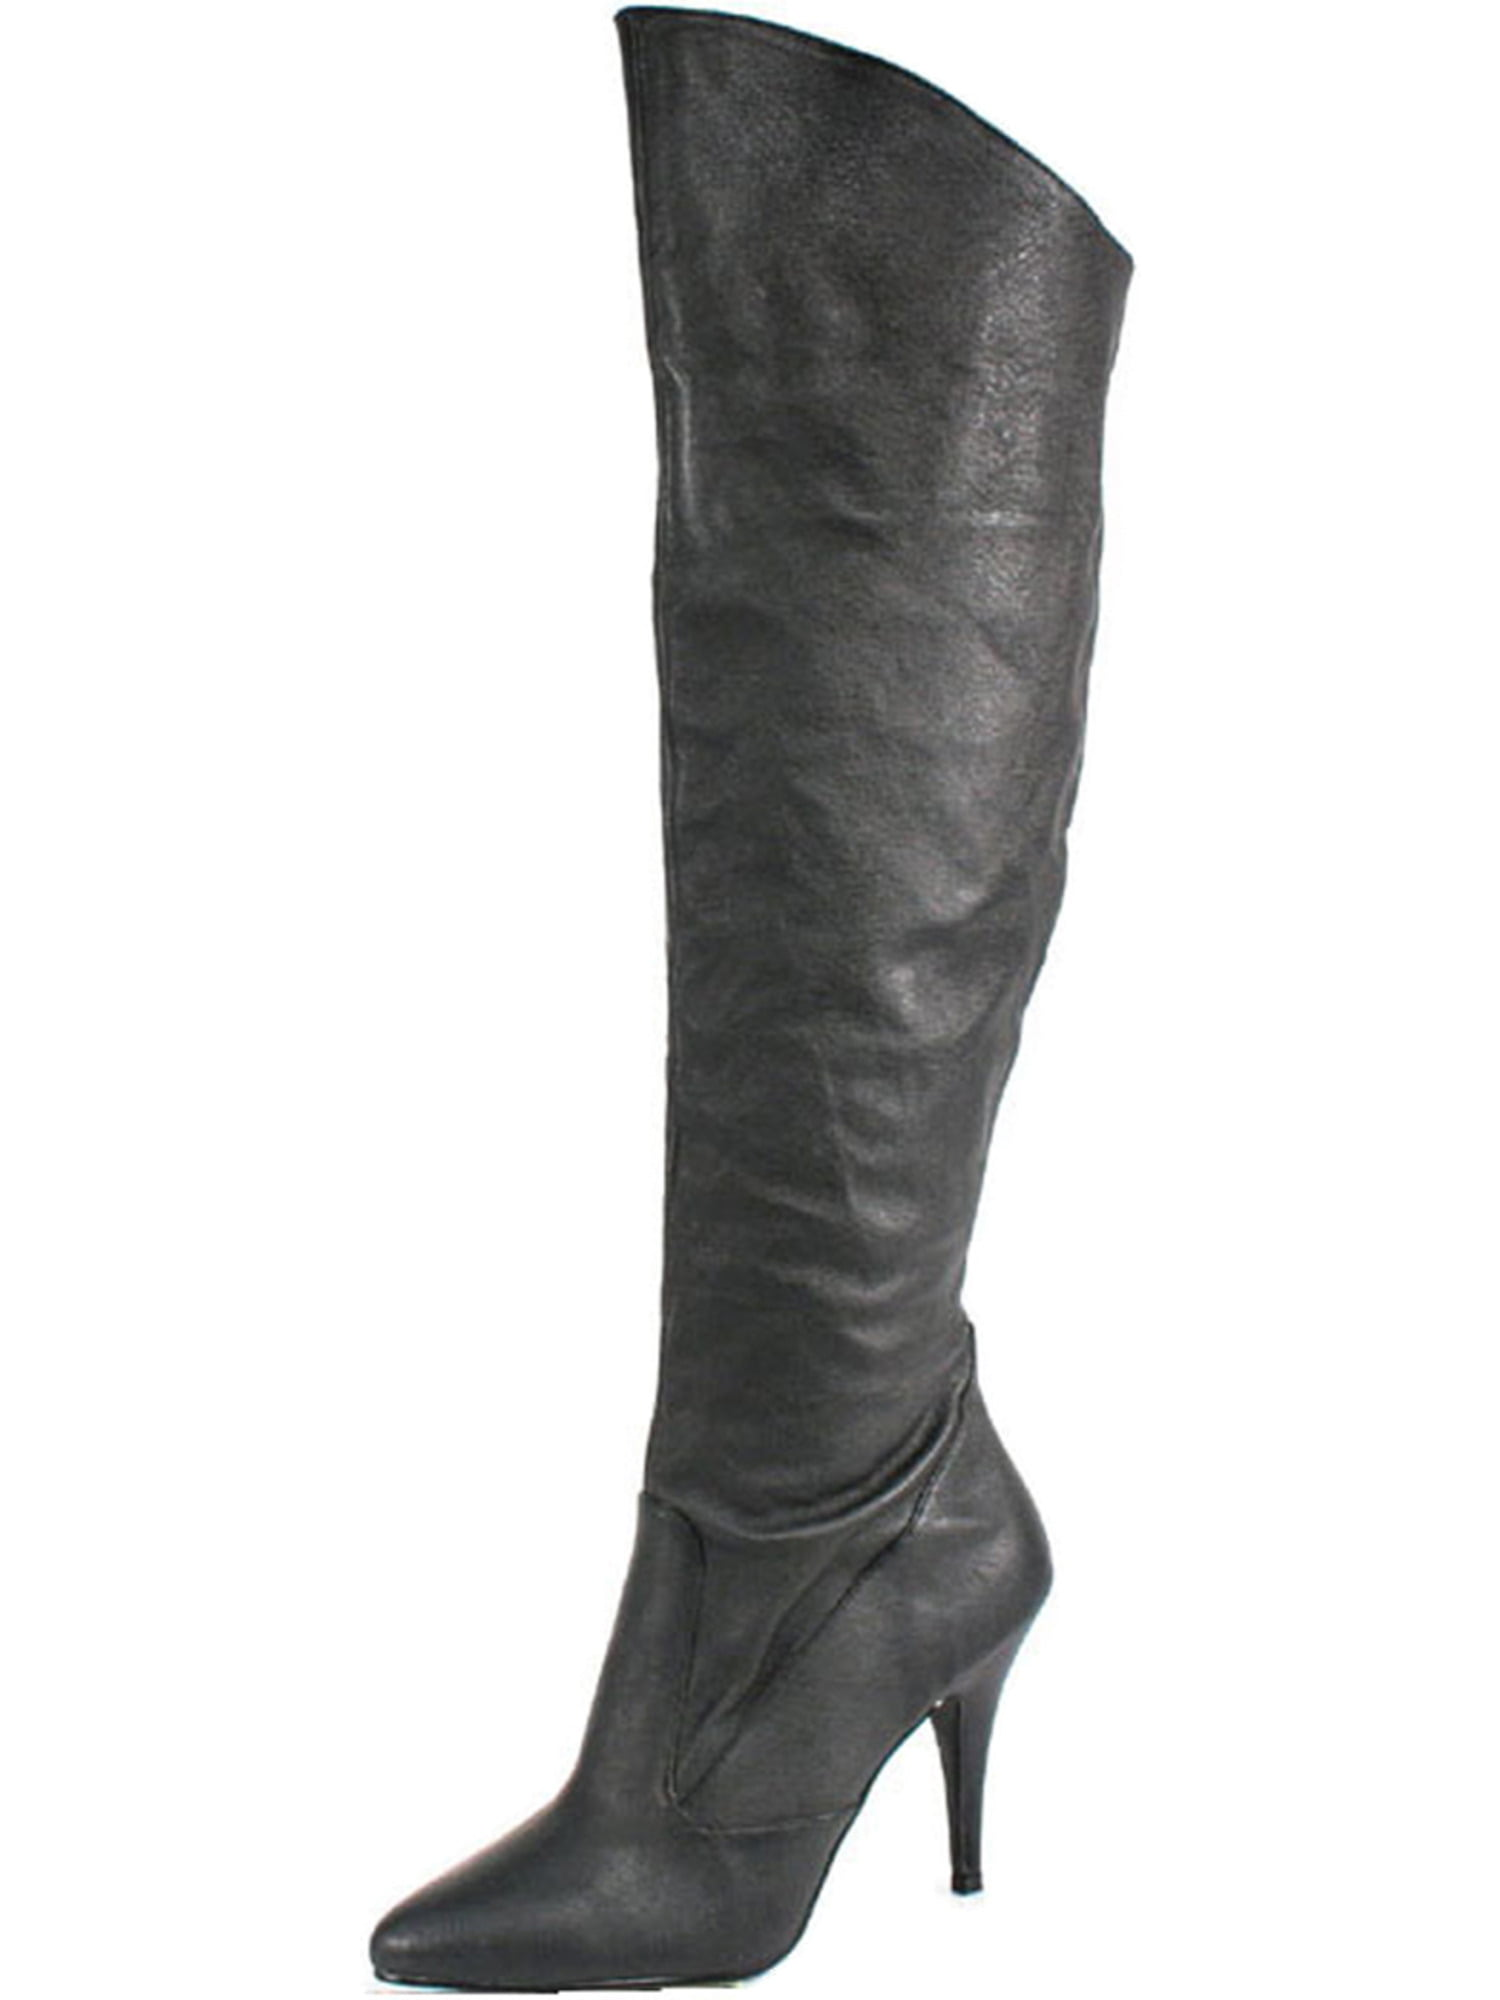 Womens Black Leather Boots 4 Inch Heels Sexy Knee High Boots Cuffed Knee Shoes